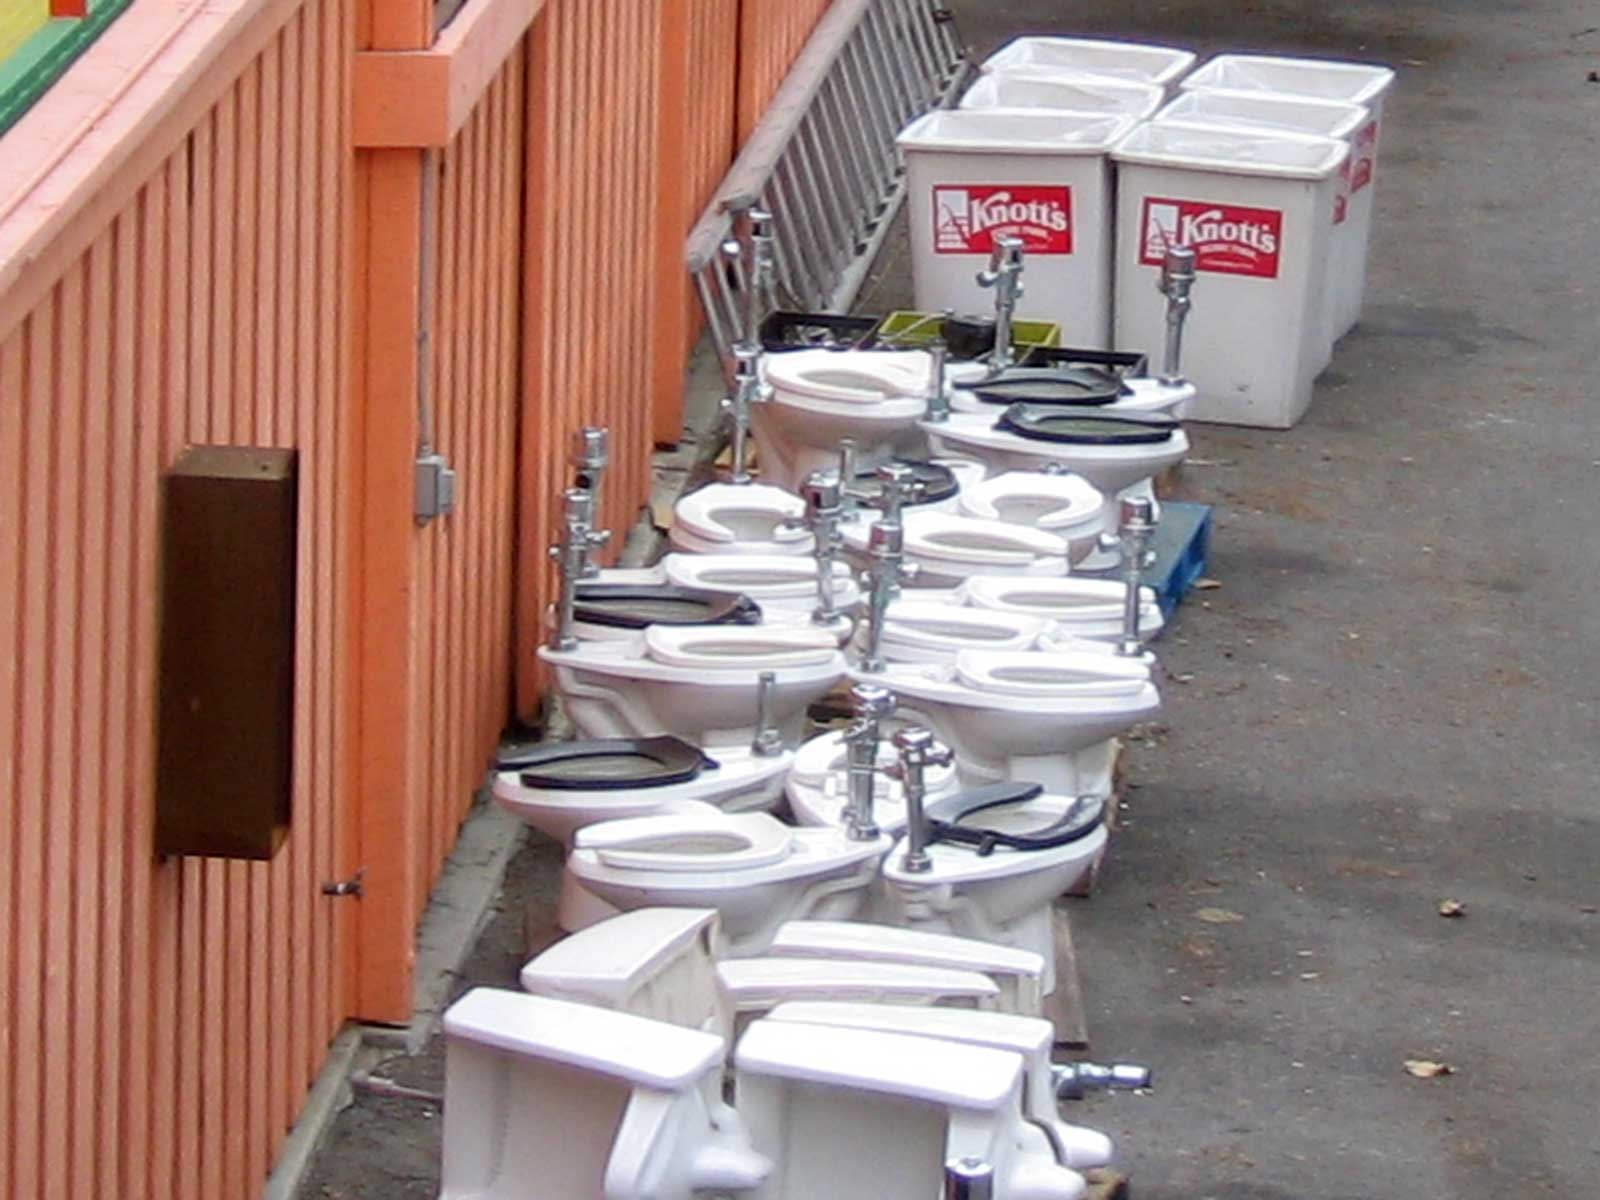 Parts For Portable Toilets For Sale In Ventura County